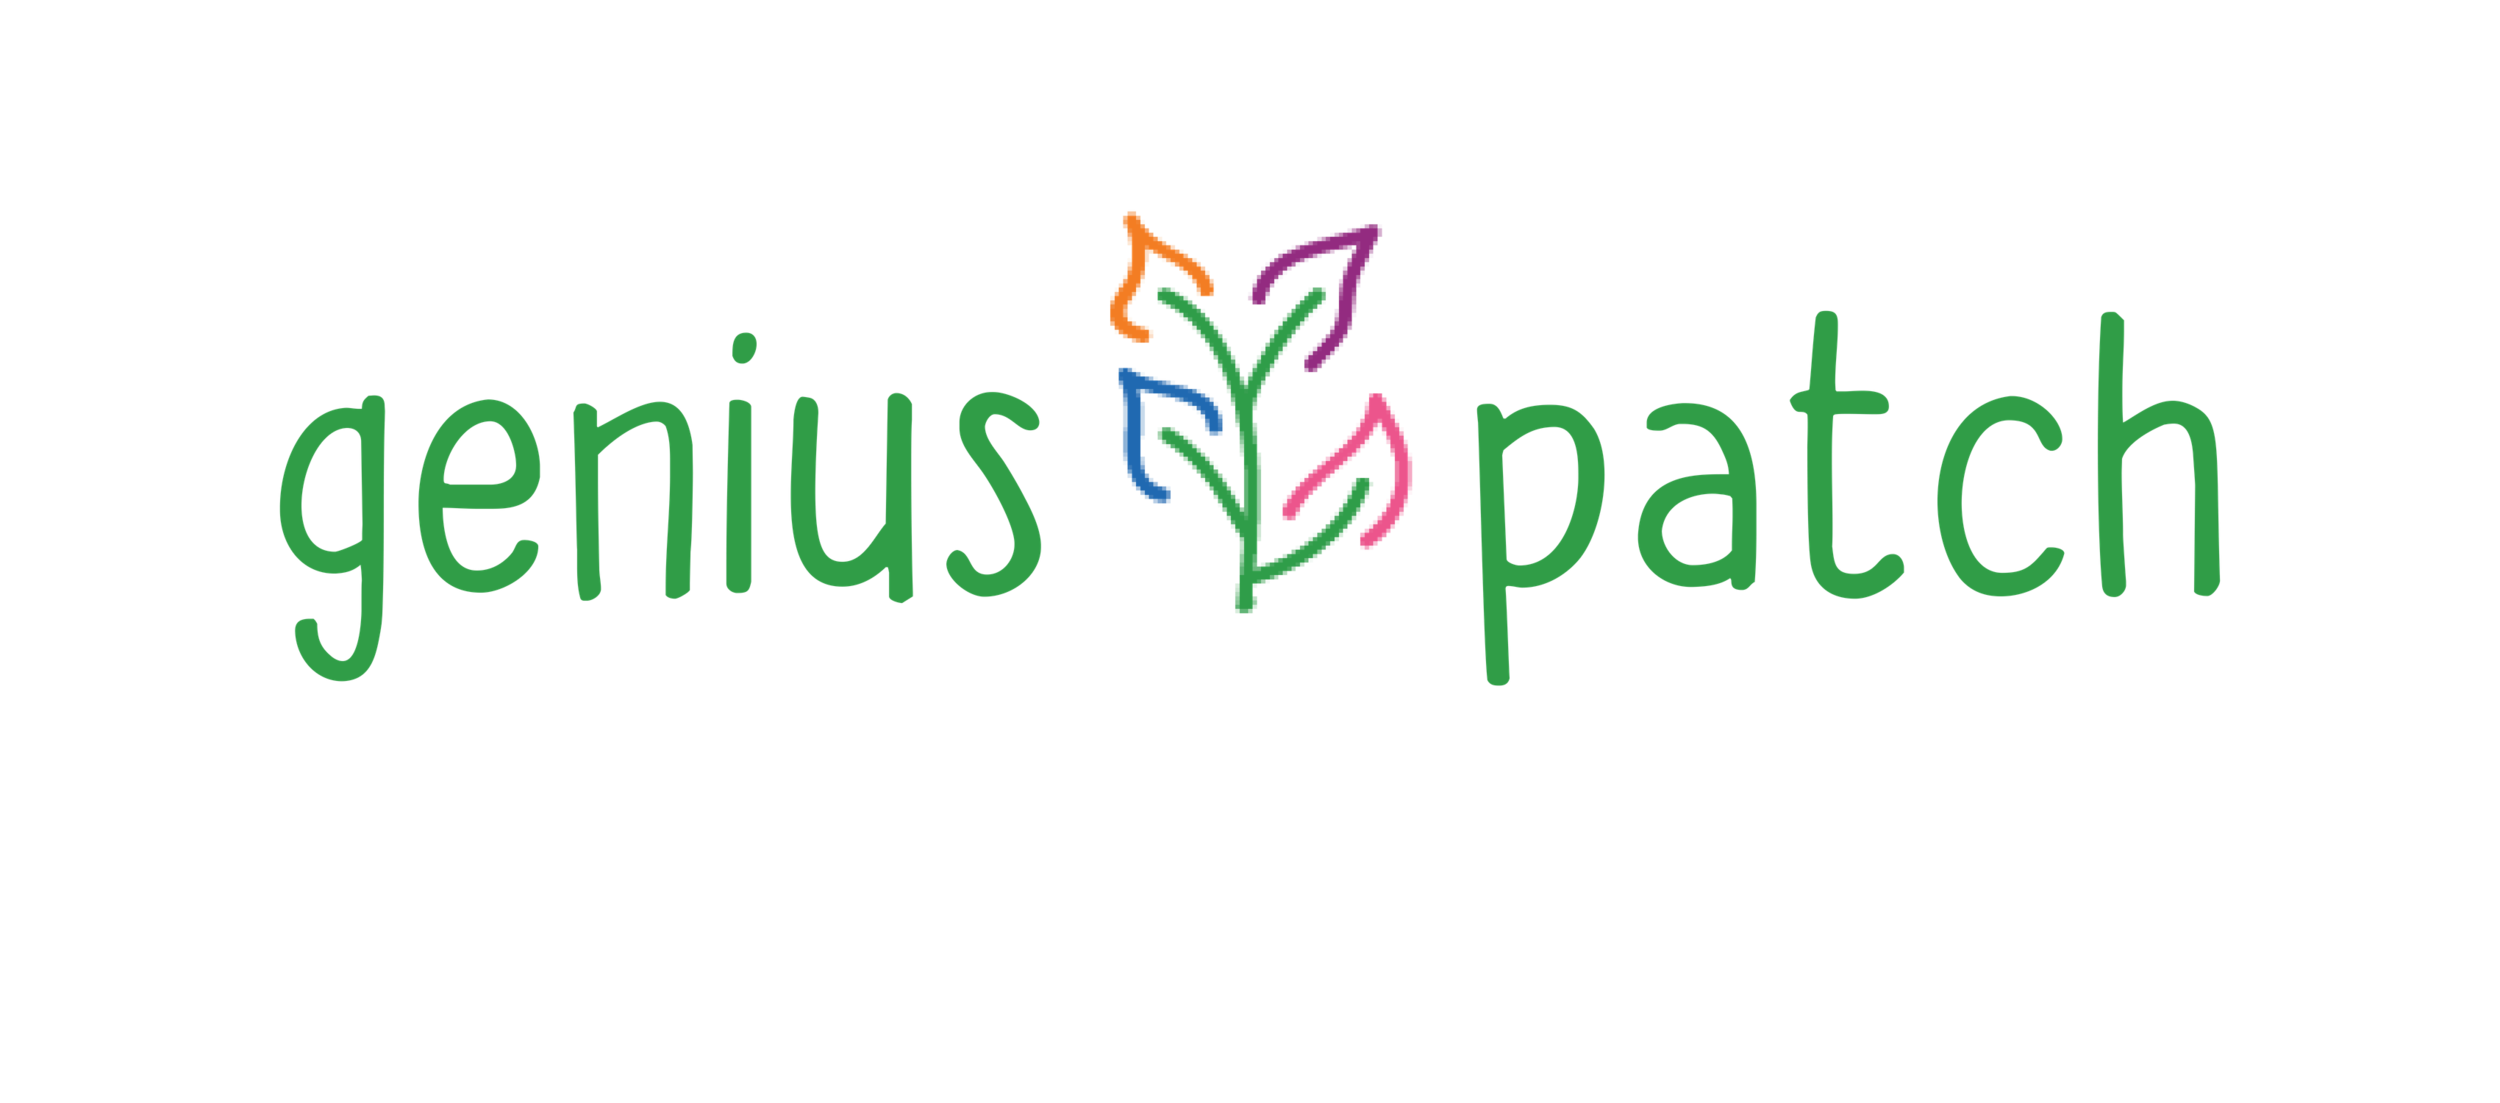 Genius Patch final logo (words only).png